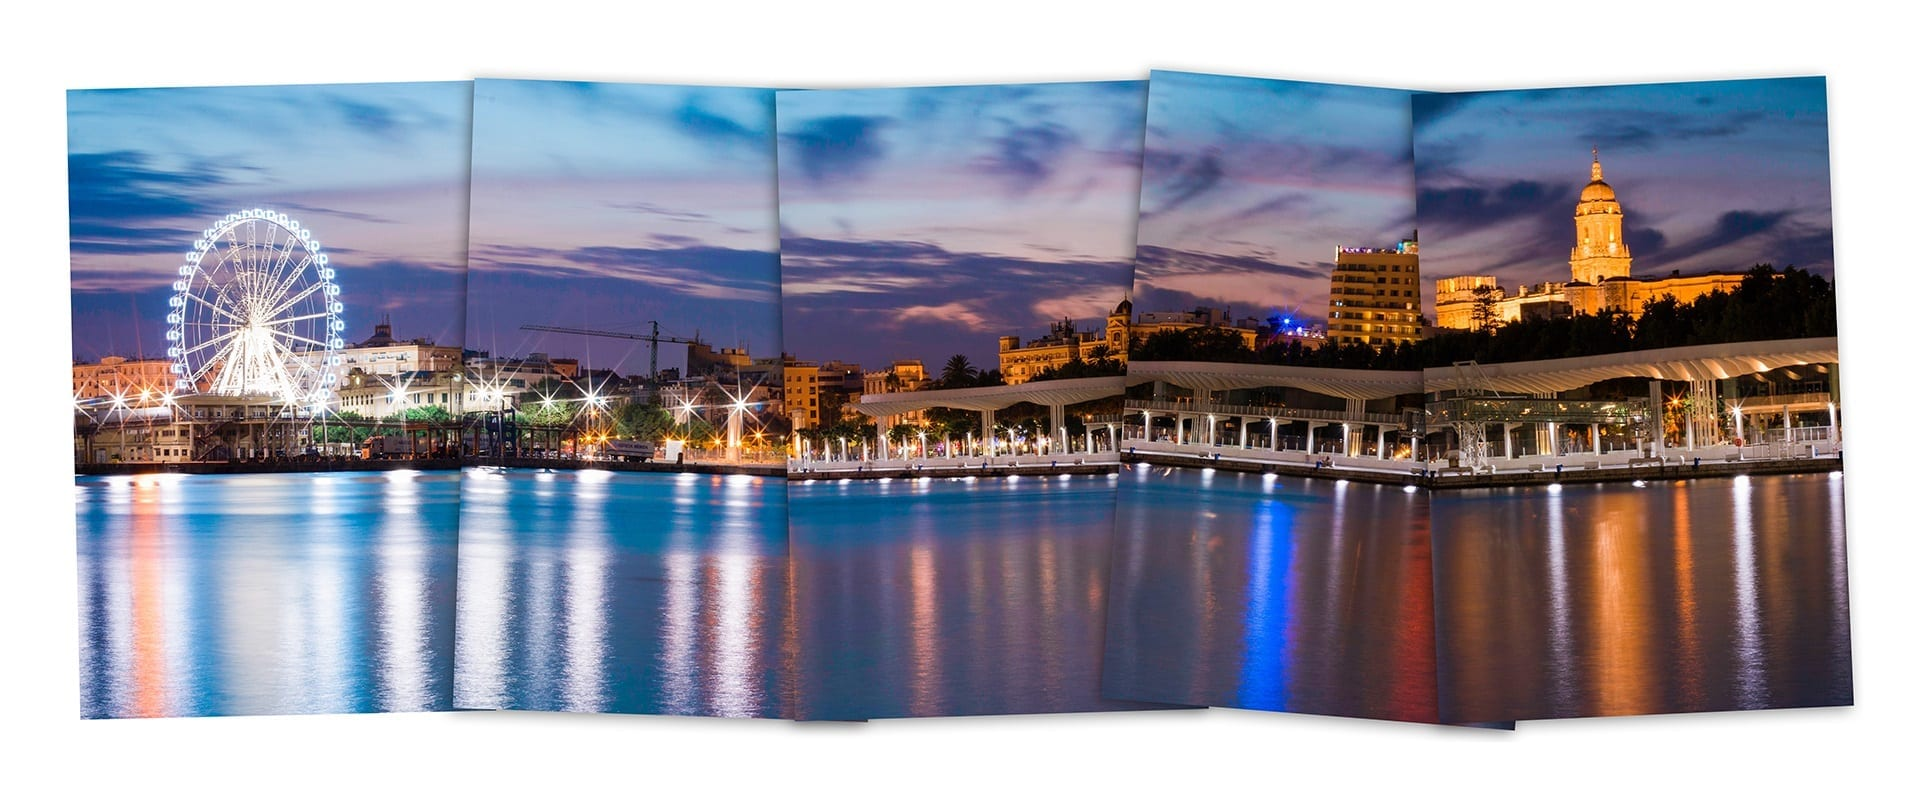 many single pictures of a city close to a river at night   virtual reality & panorama pictures service